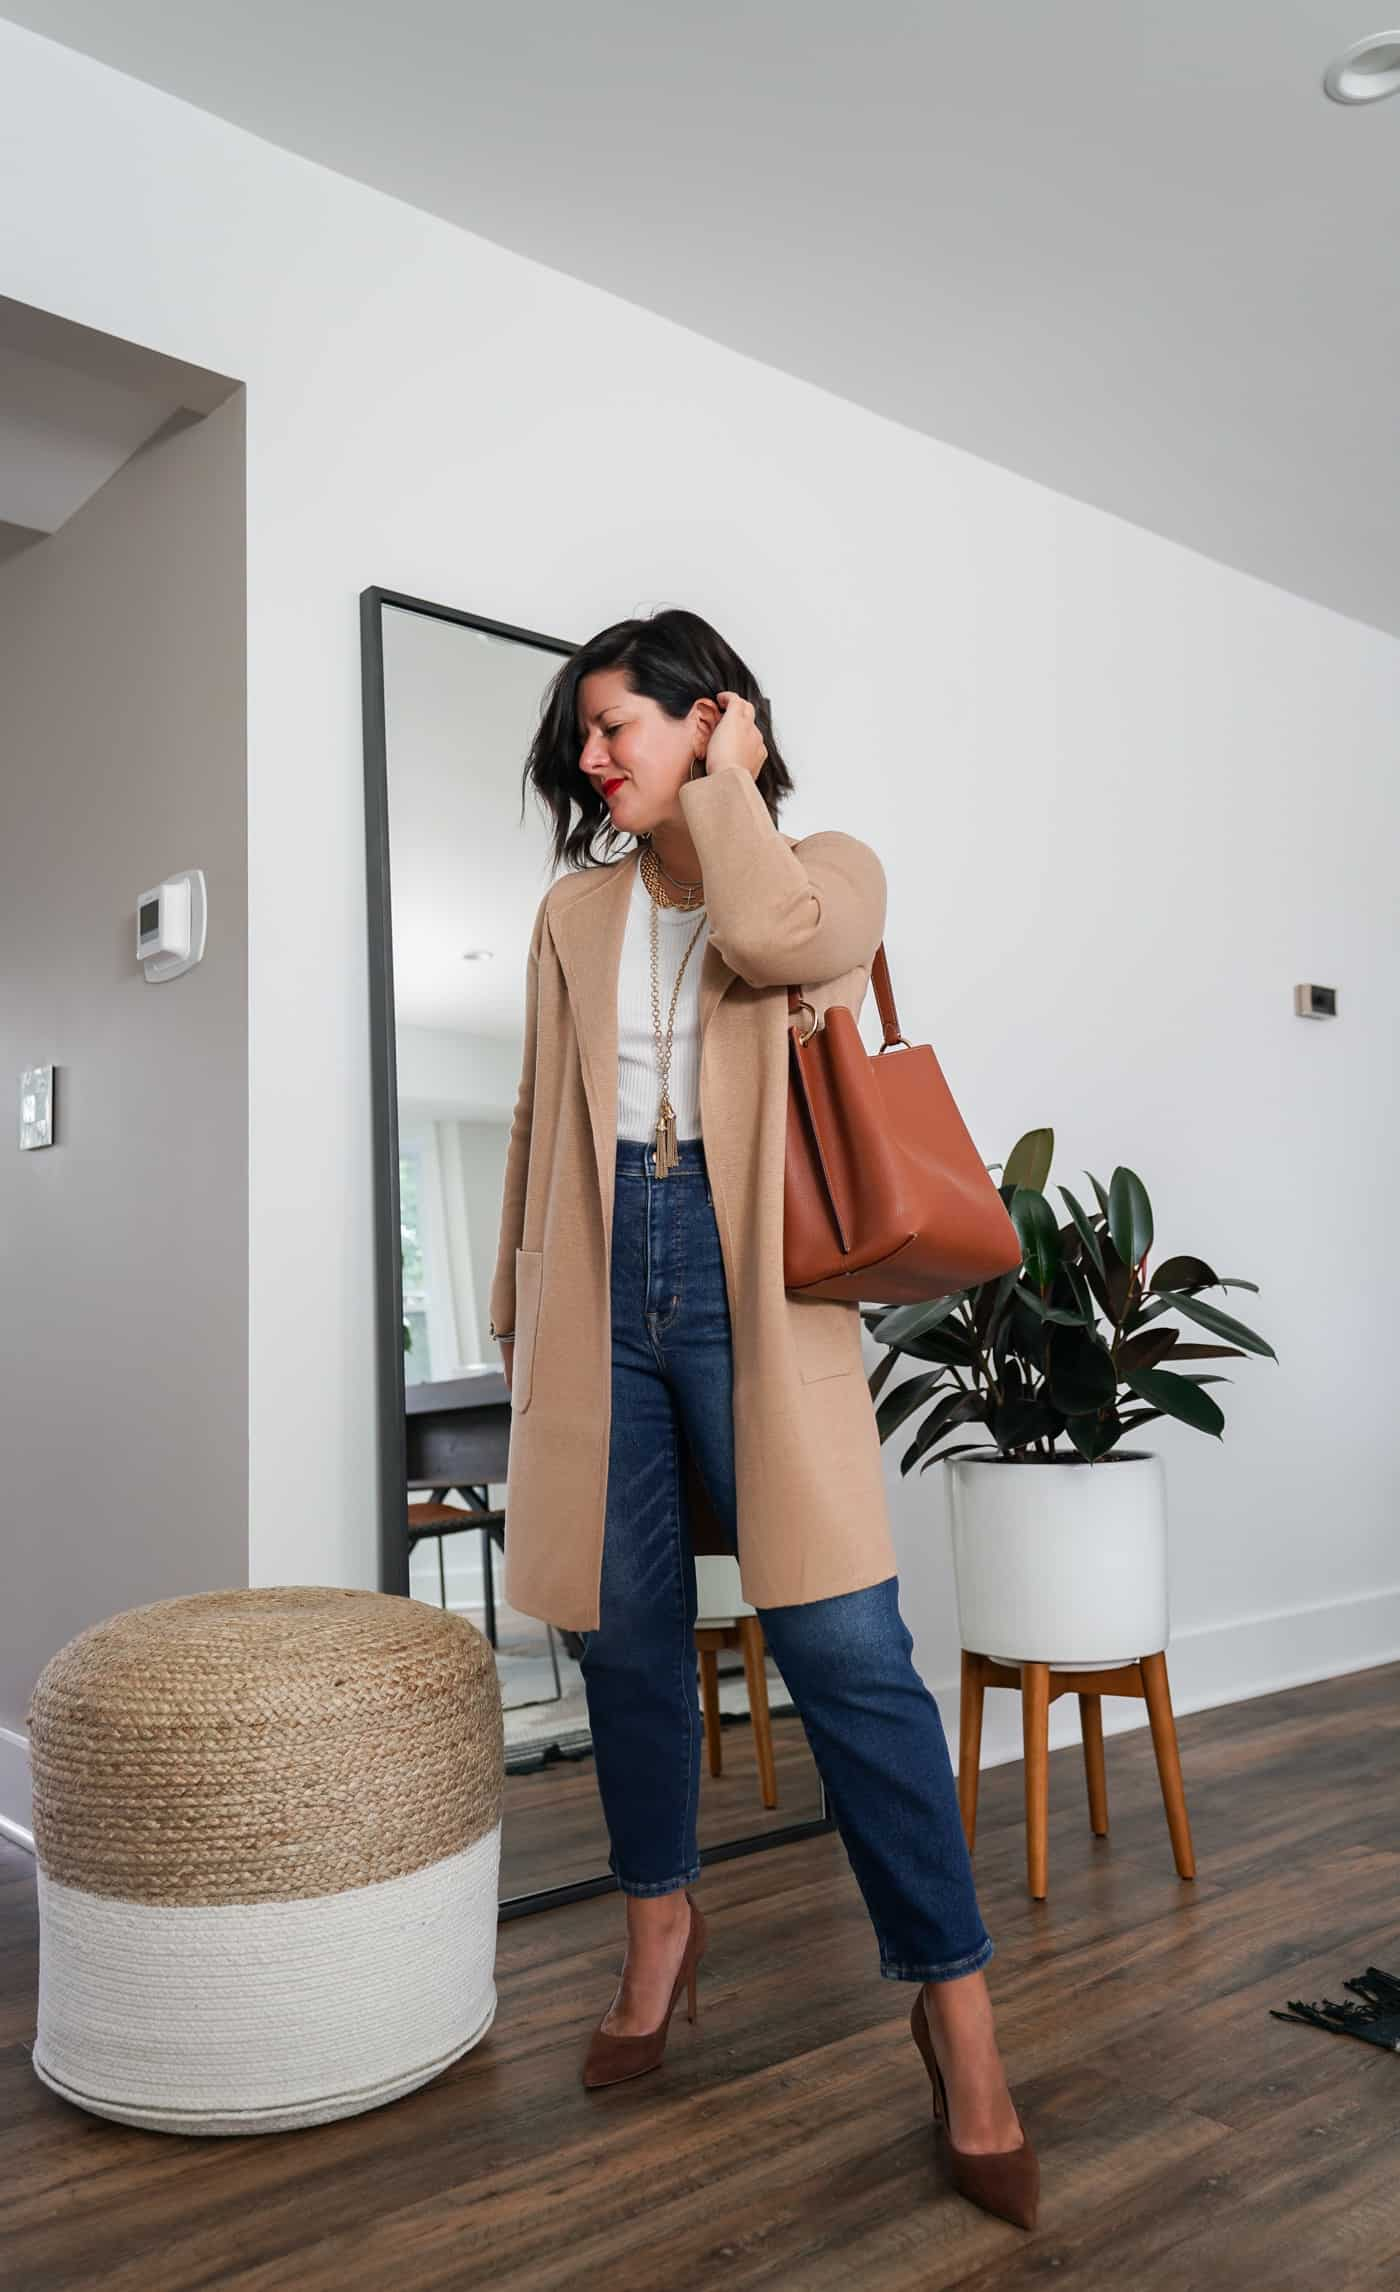 A Lily Love Affair shares how to wear a long cardigan with straight leg denim and brown heels